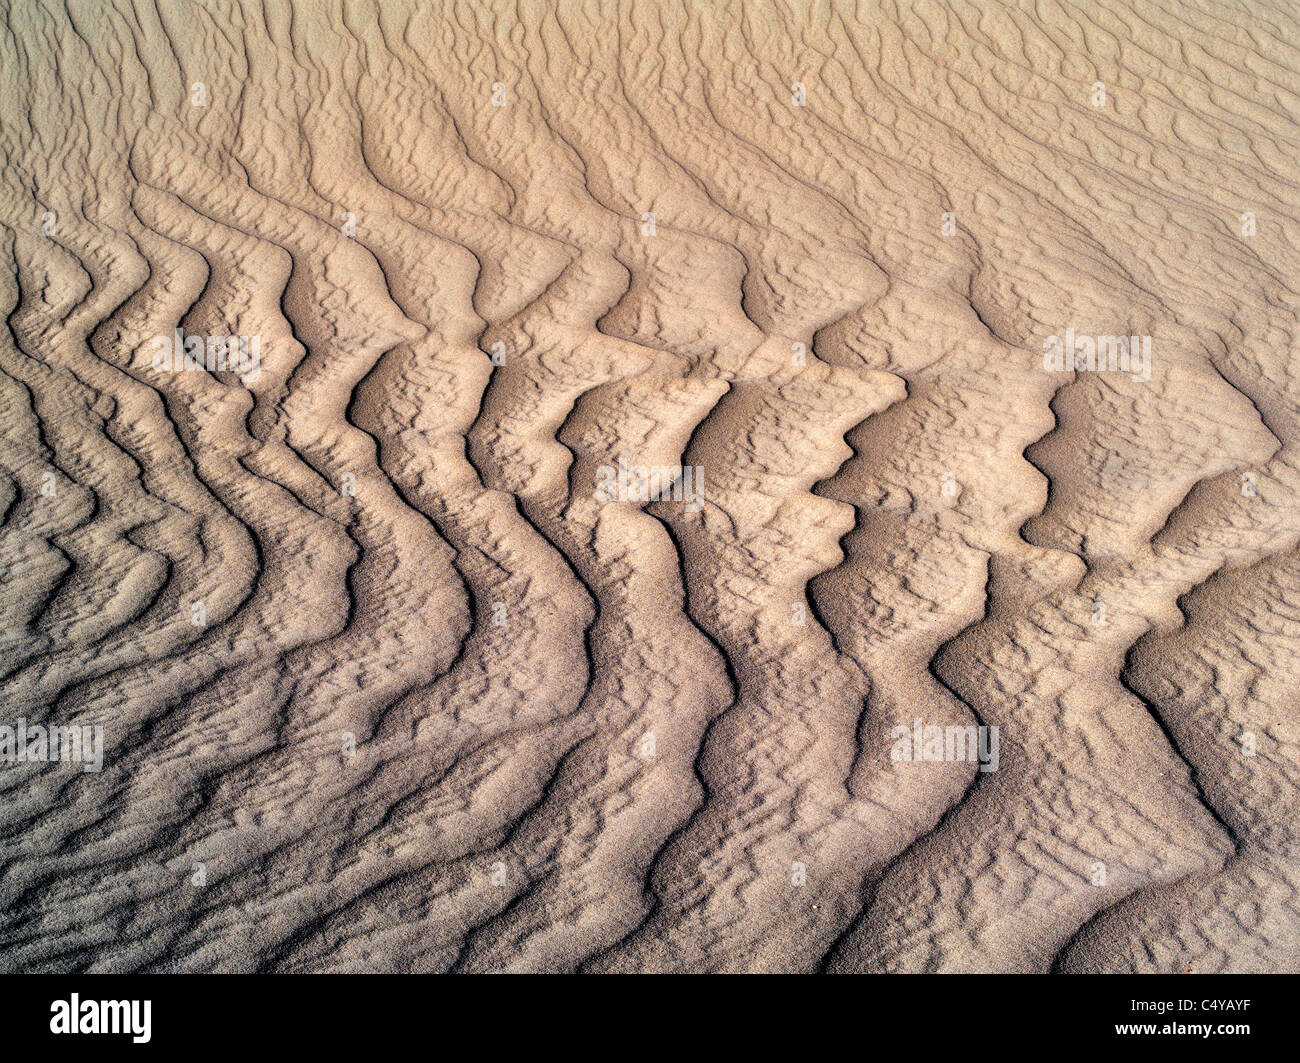 Patterns in sand after intense wind storm. Death Valley National Park, California Stock Photo